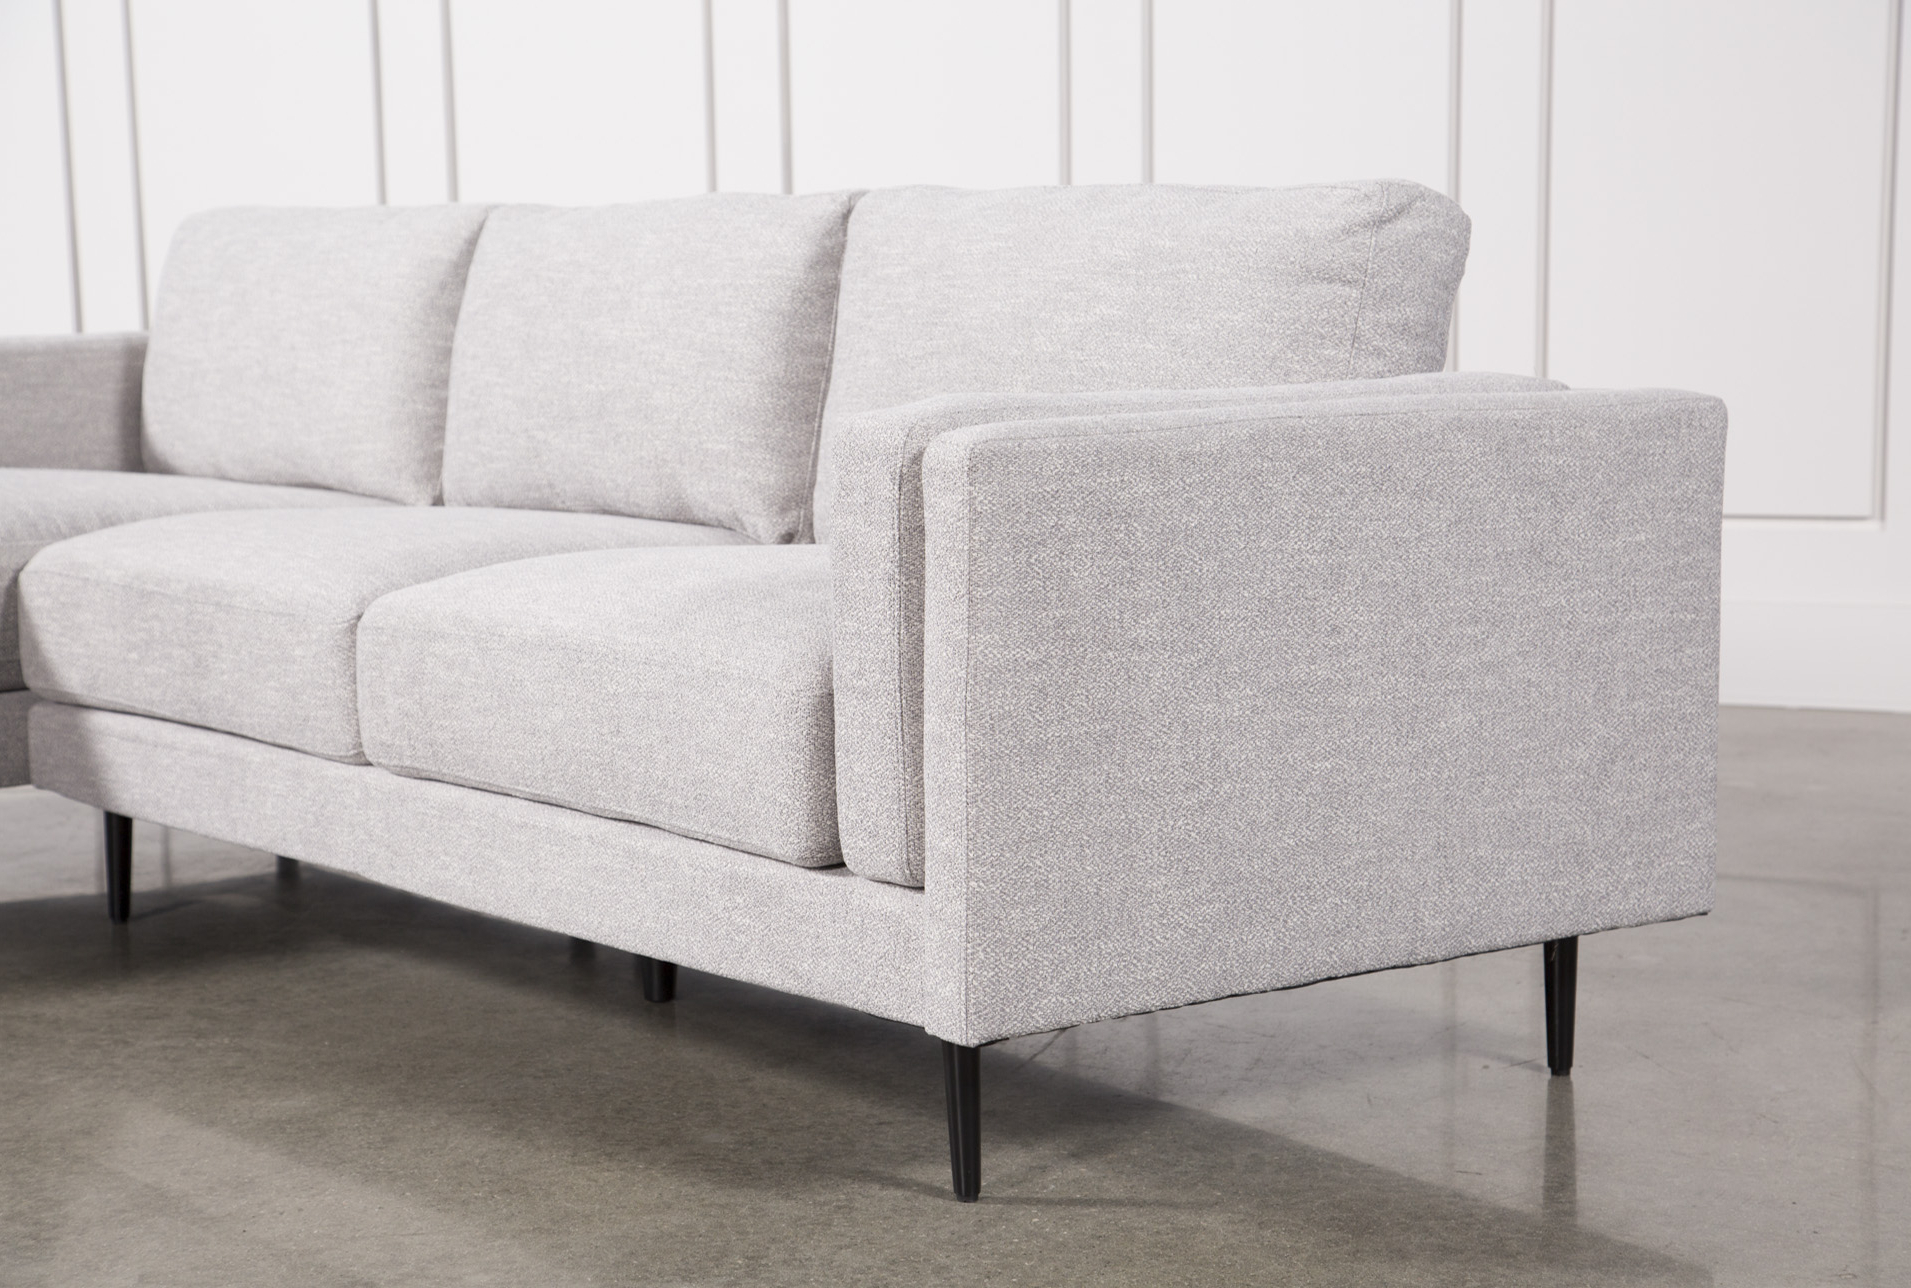 Aquarius Light Grey 2 Piece Sectional W/raf Chaise (View 8 of 20)